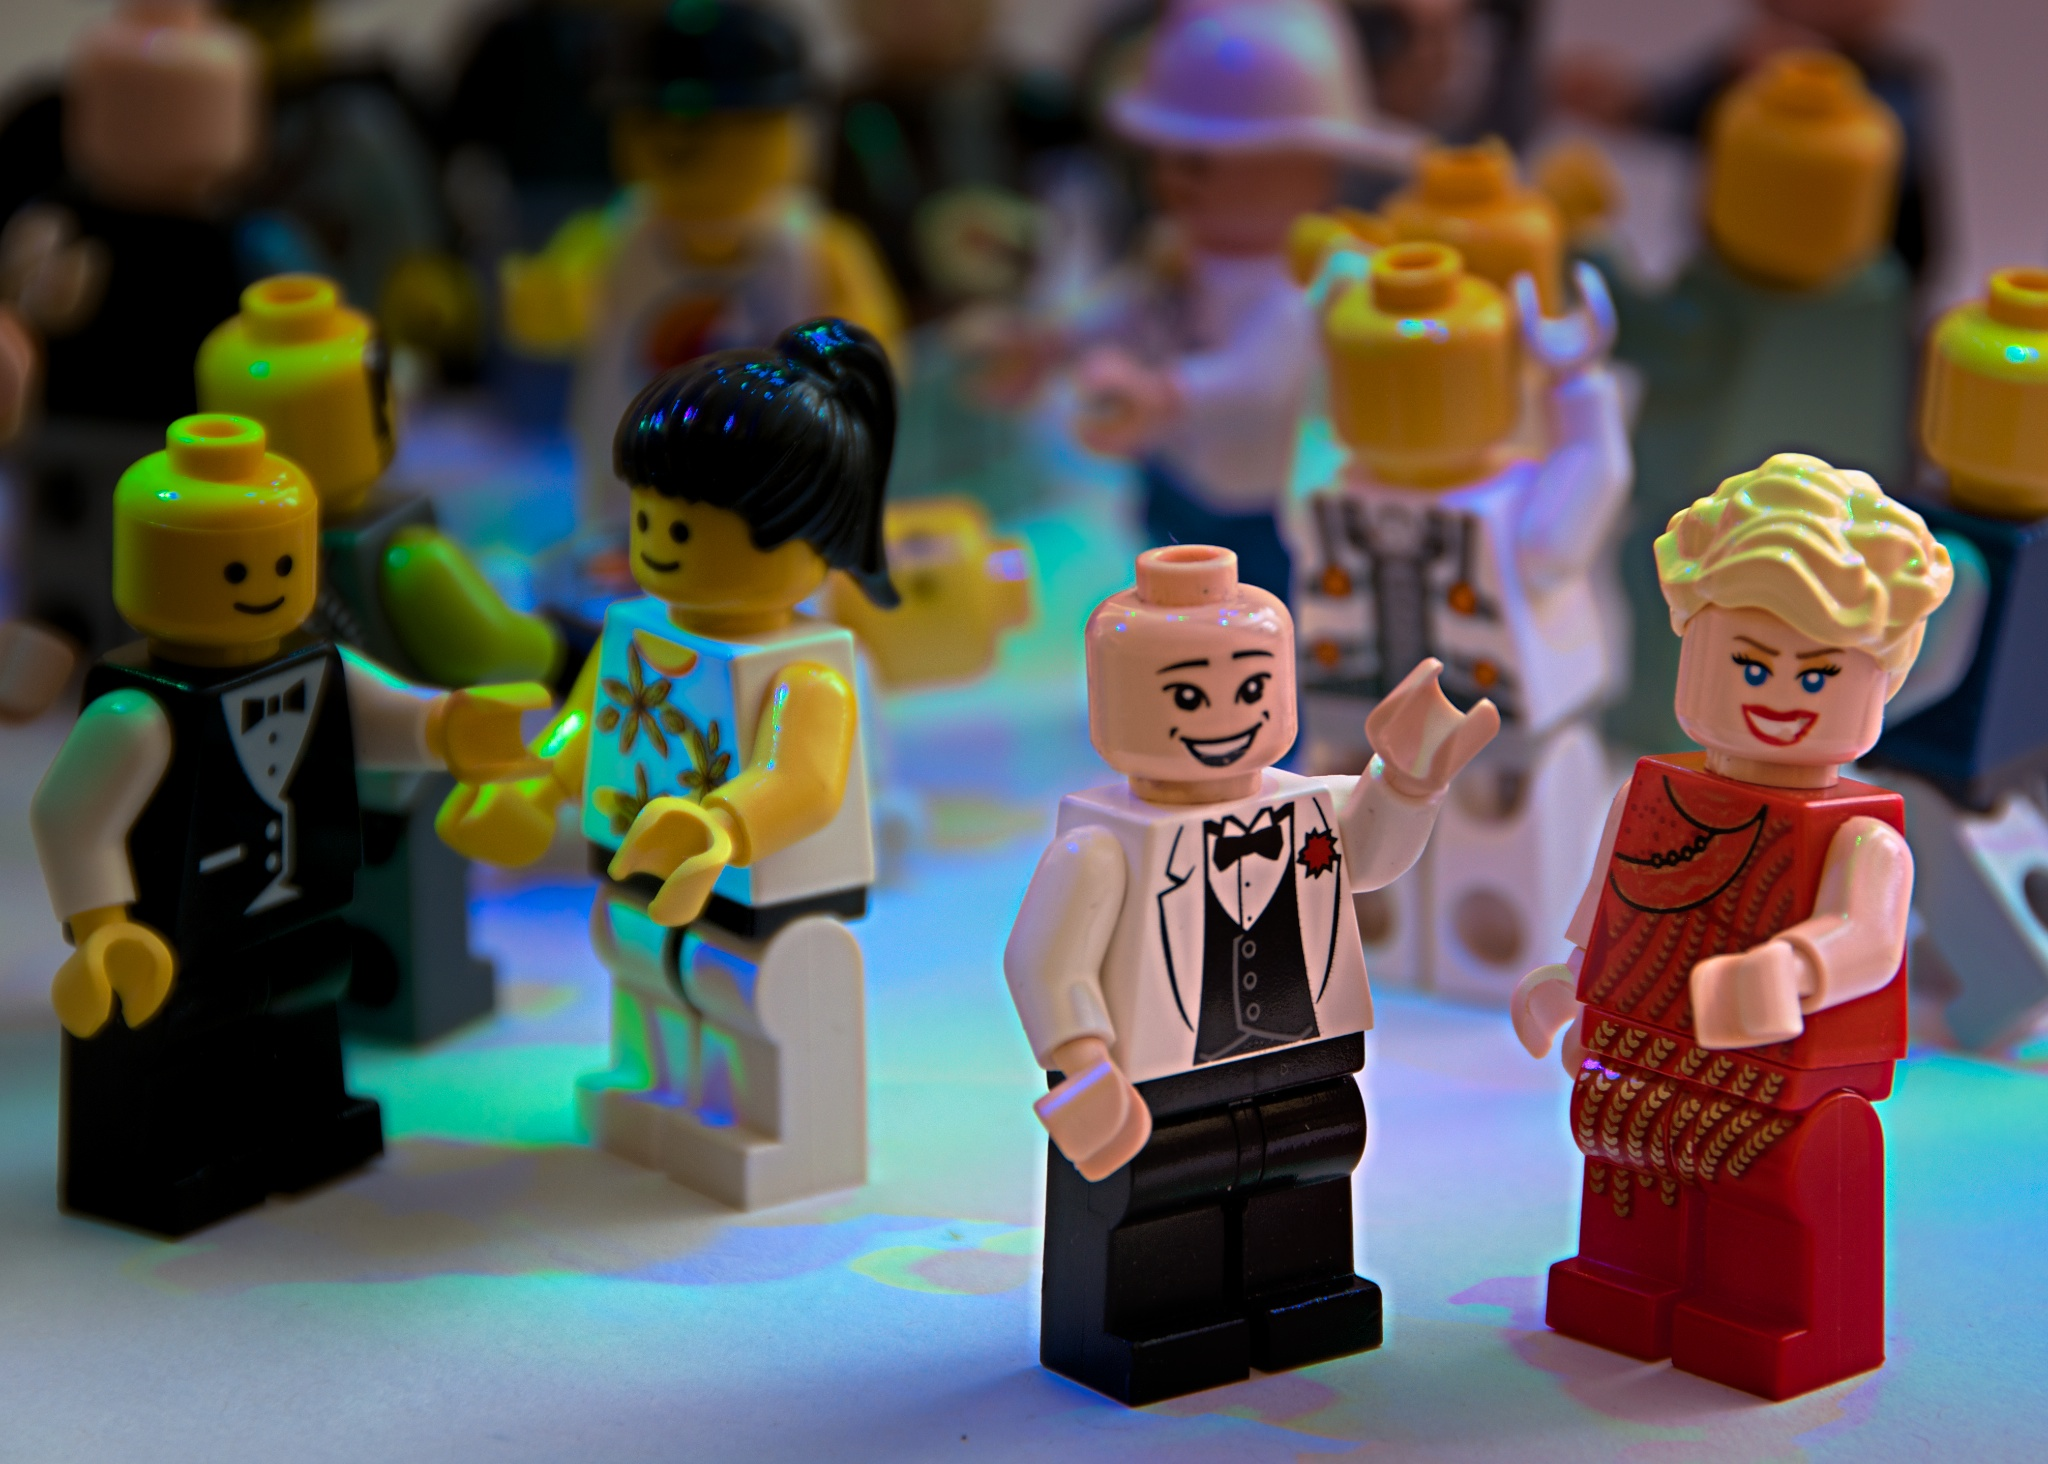 The Lego Rave